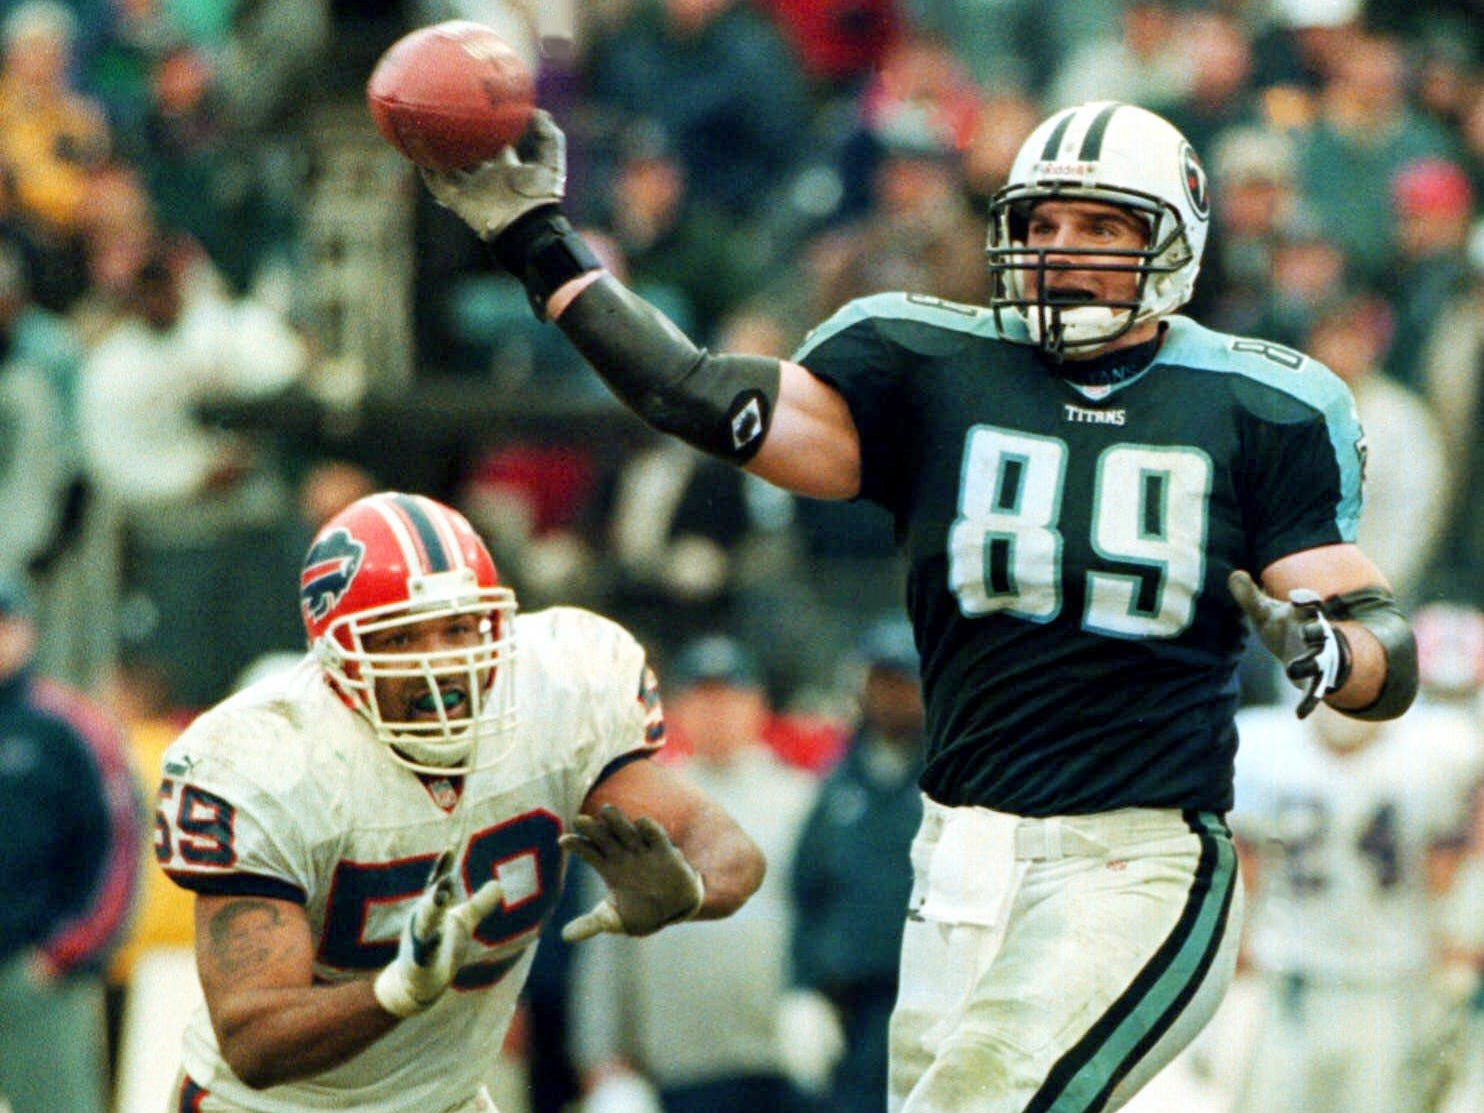 With Buffalo Bills defender Sam Rogers (59) moving in, Tennessee Titans' Frank Wycheck laterals the ball across the field to teammate Kevin Dyson at Adelphia Coliseum Jan. 8, 2000.